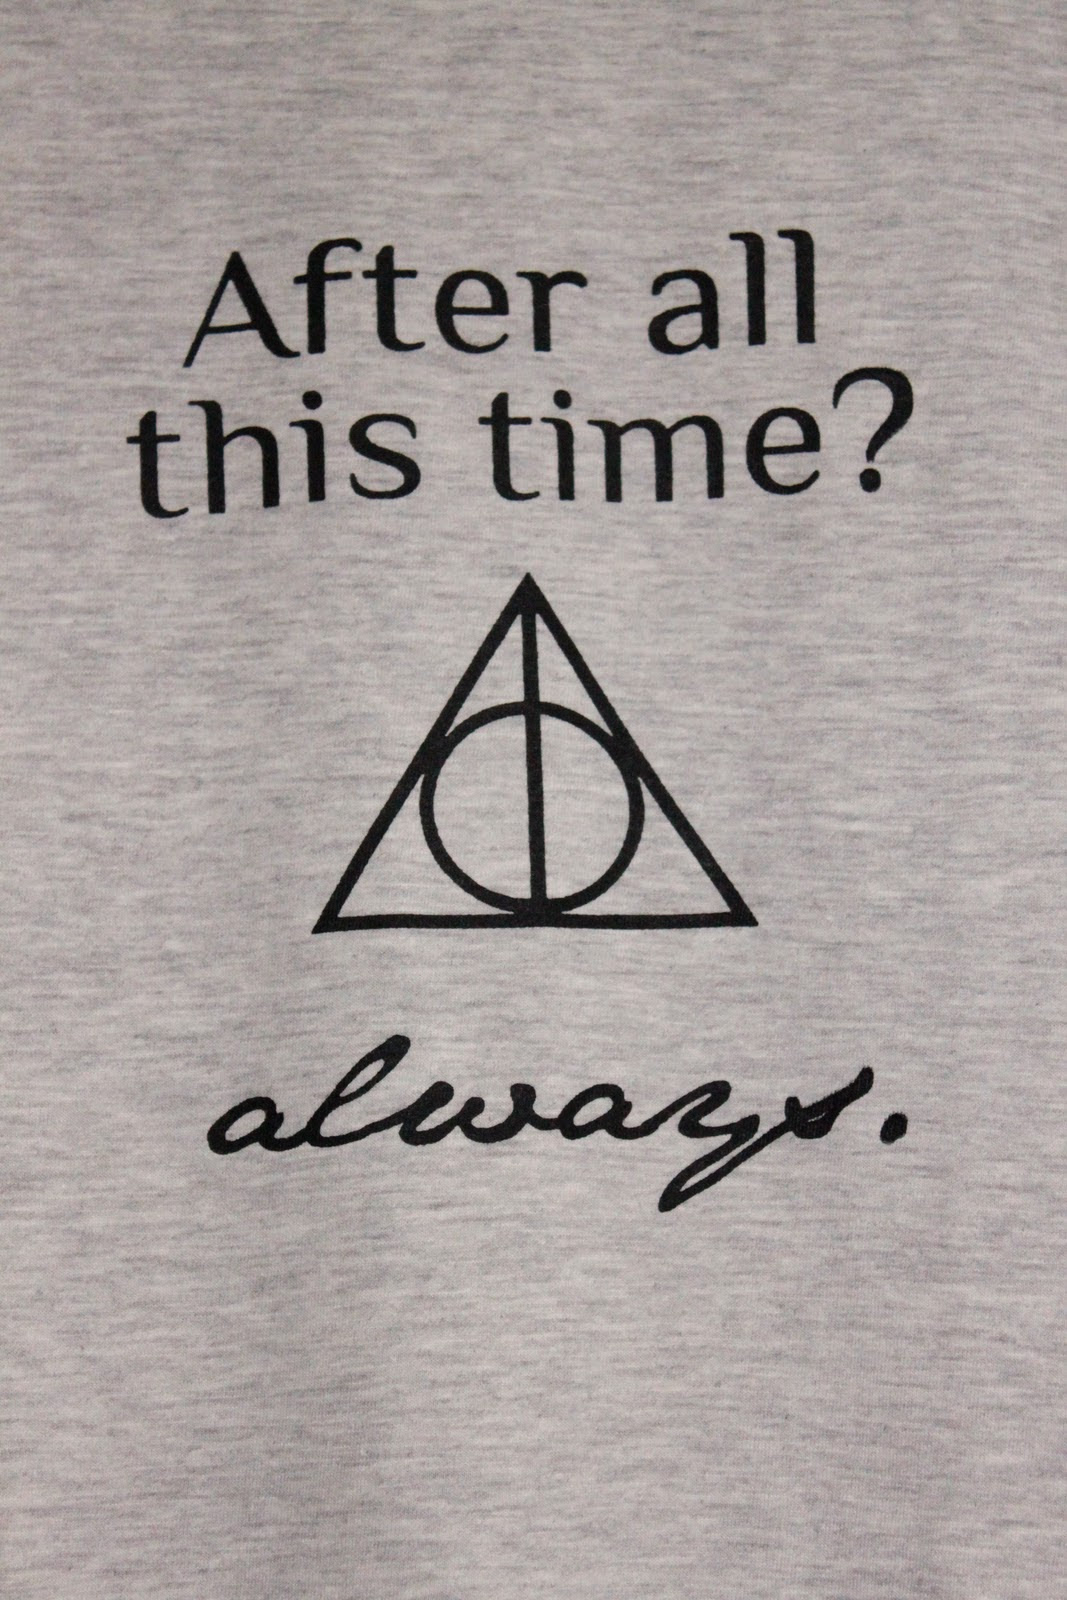 Harry Potter Famous Quotes. QuotesGram